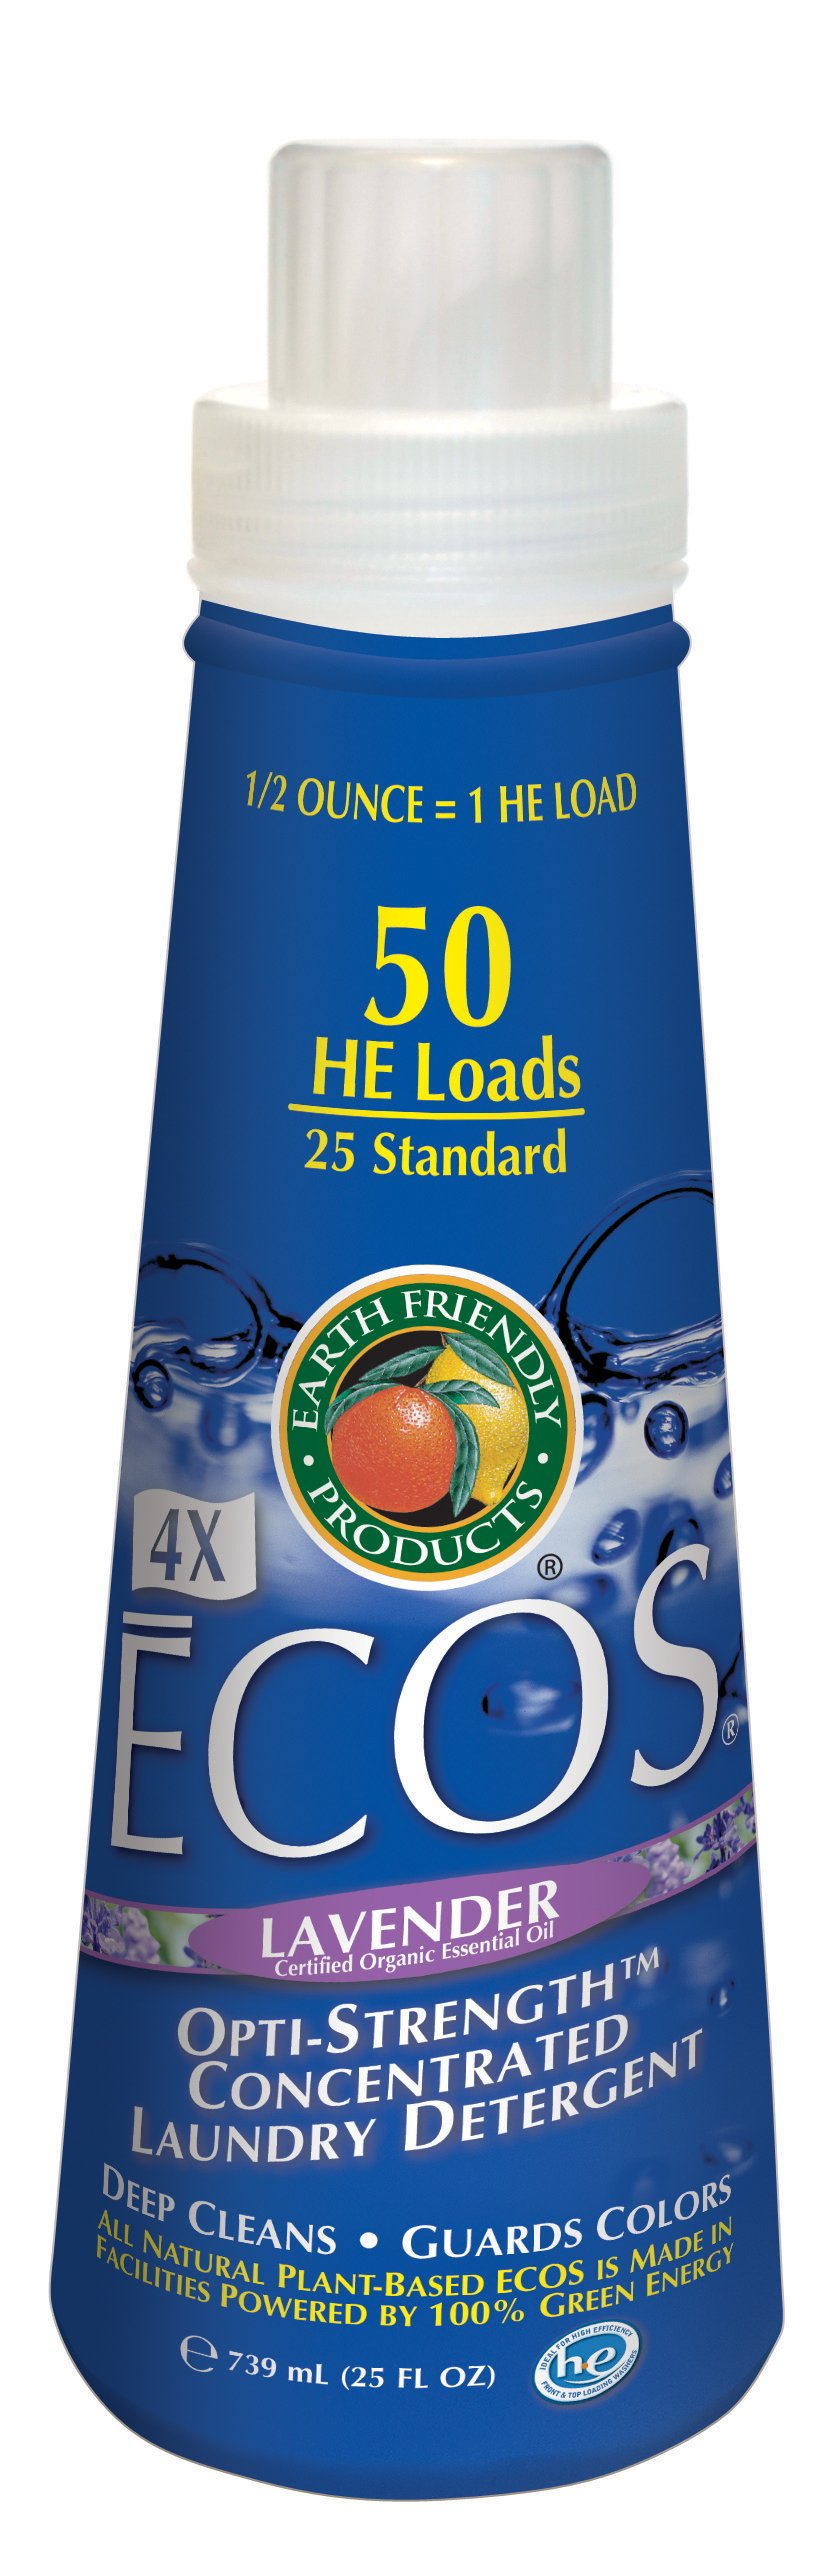 Earth Friendly Products 980006 ECOS 4X Concentrate Lavender Liquid Laundry Detergent, 25 oz Bottle (Case of 6)